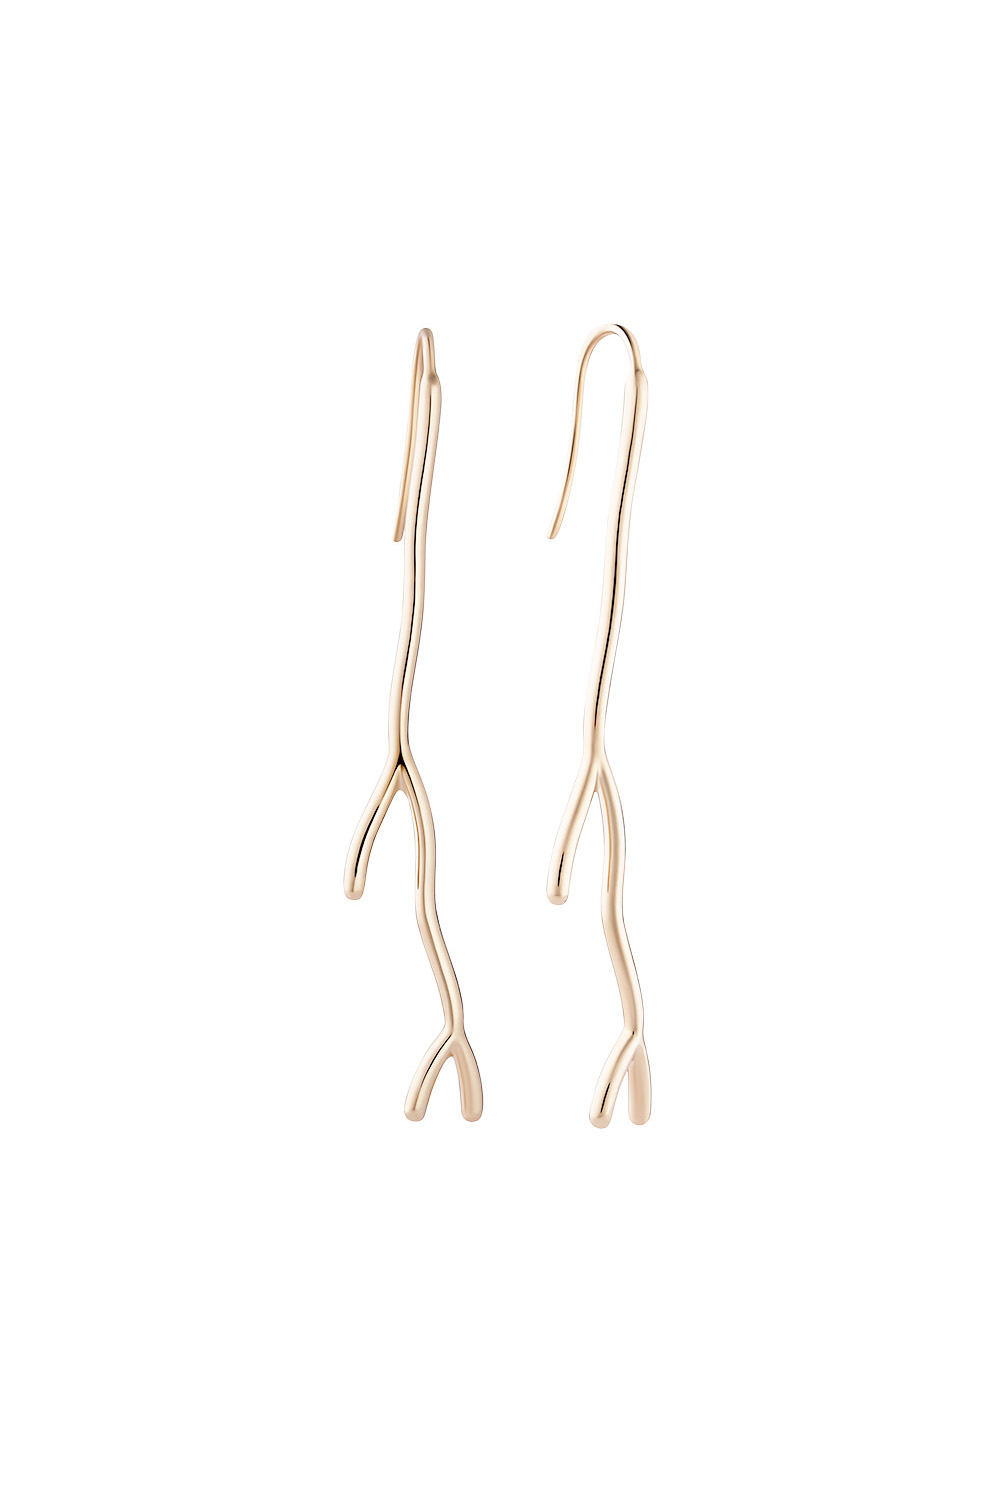 Koral Gold Rod Earrings